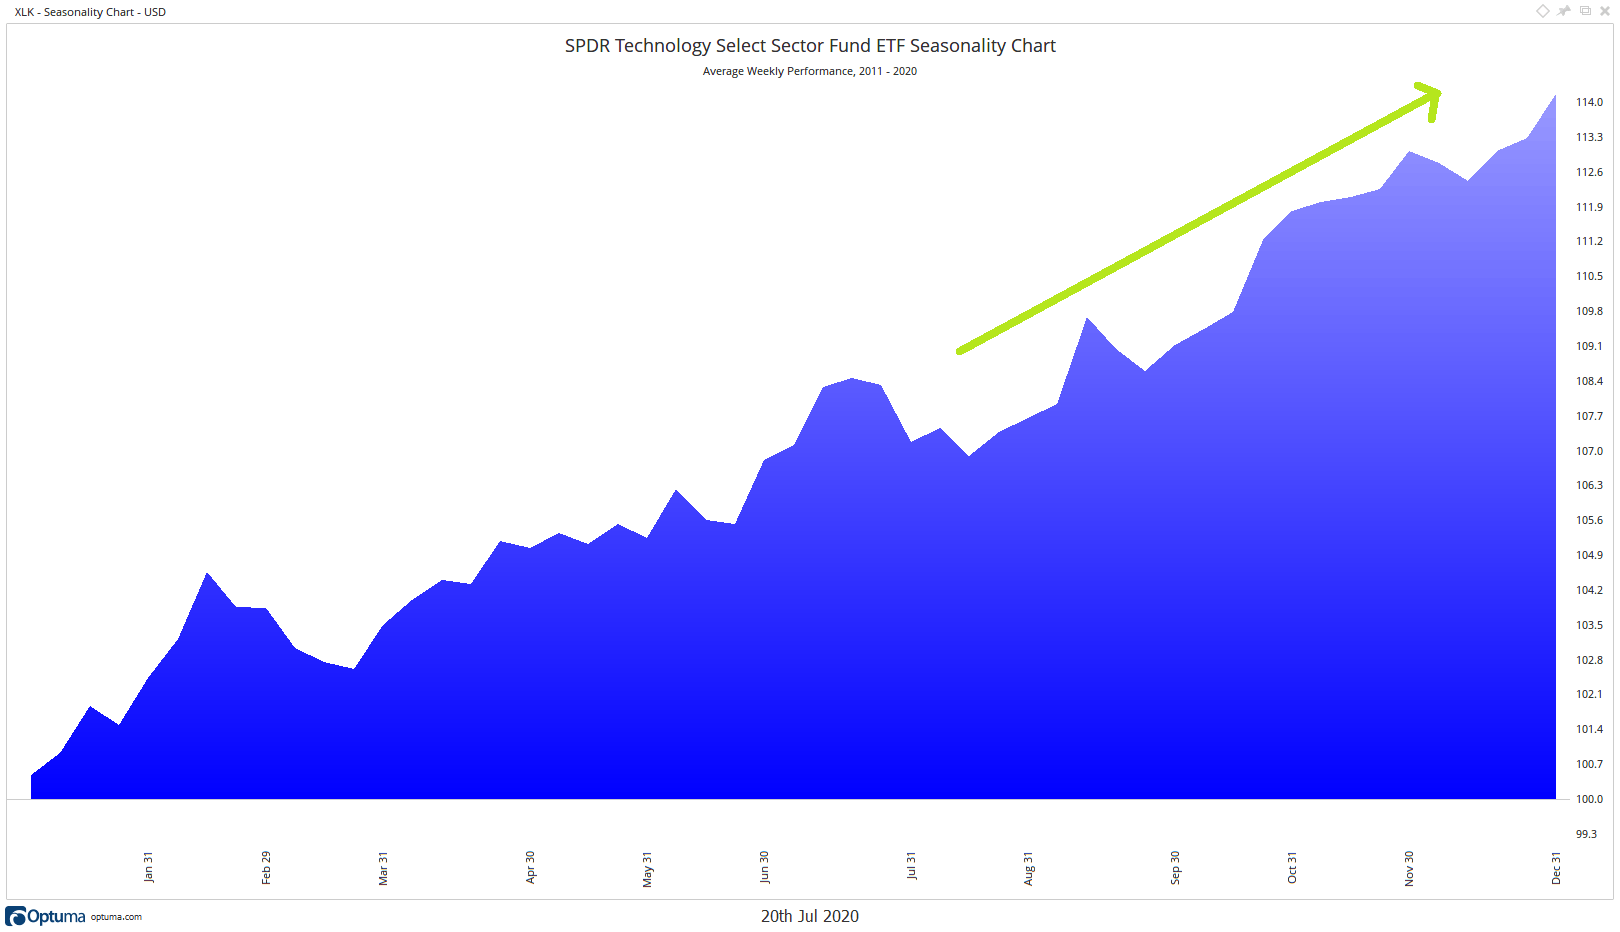 Chart showing a continuing uptrend in technology based on seasonality trends.